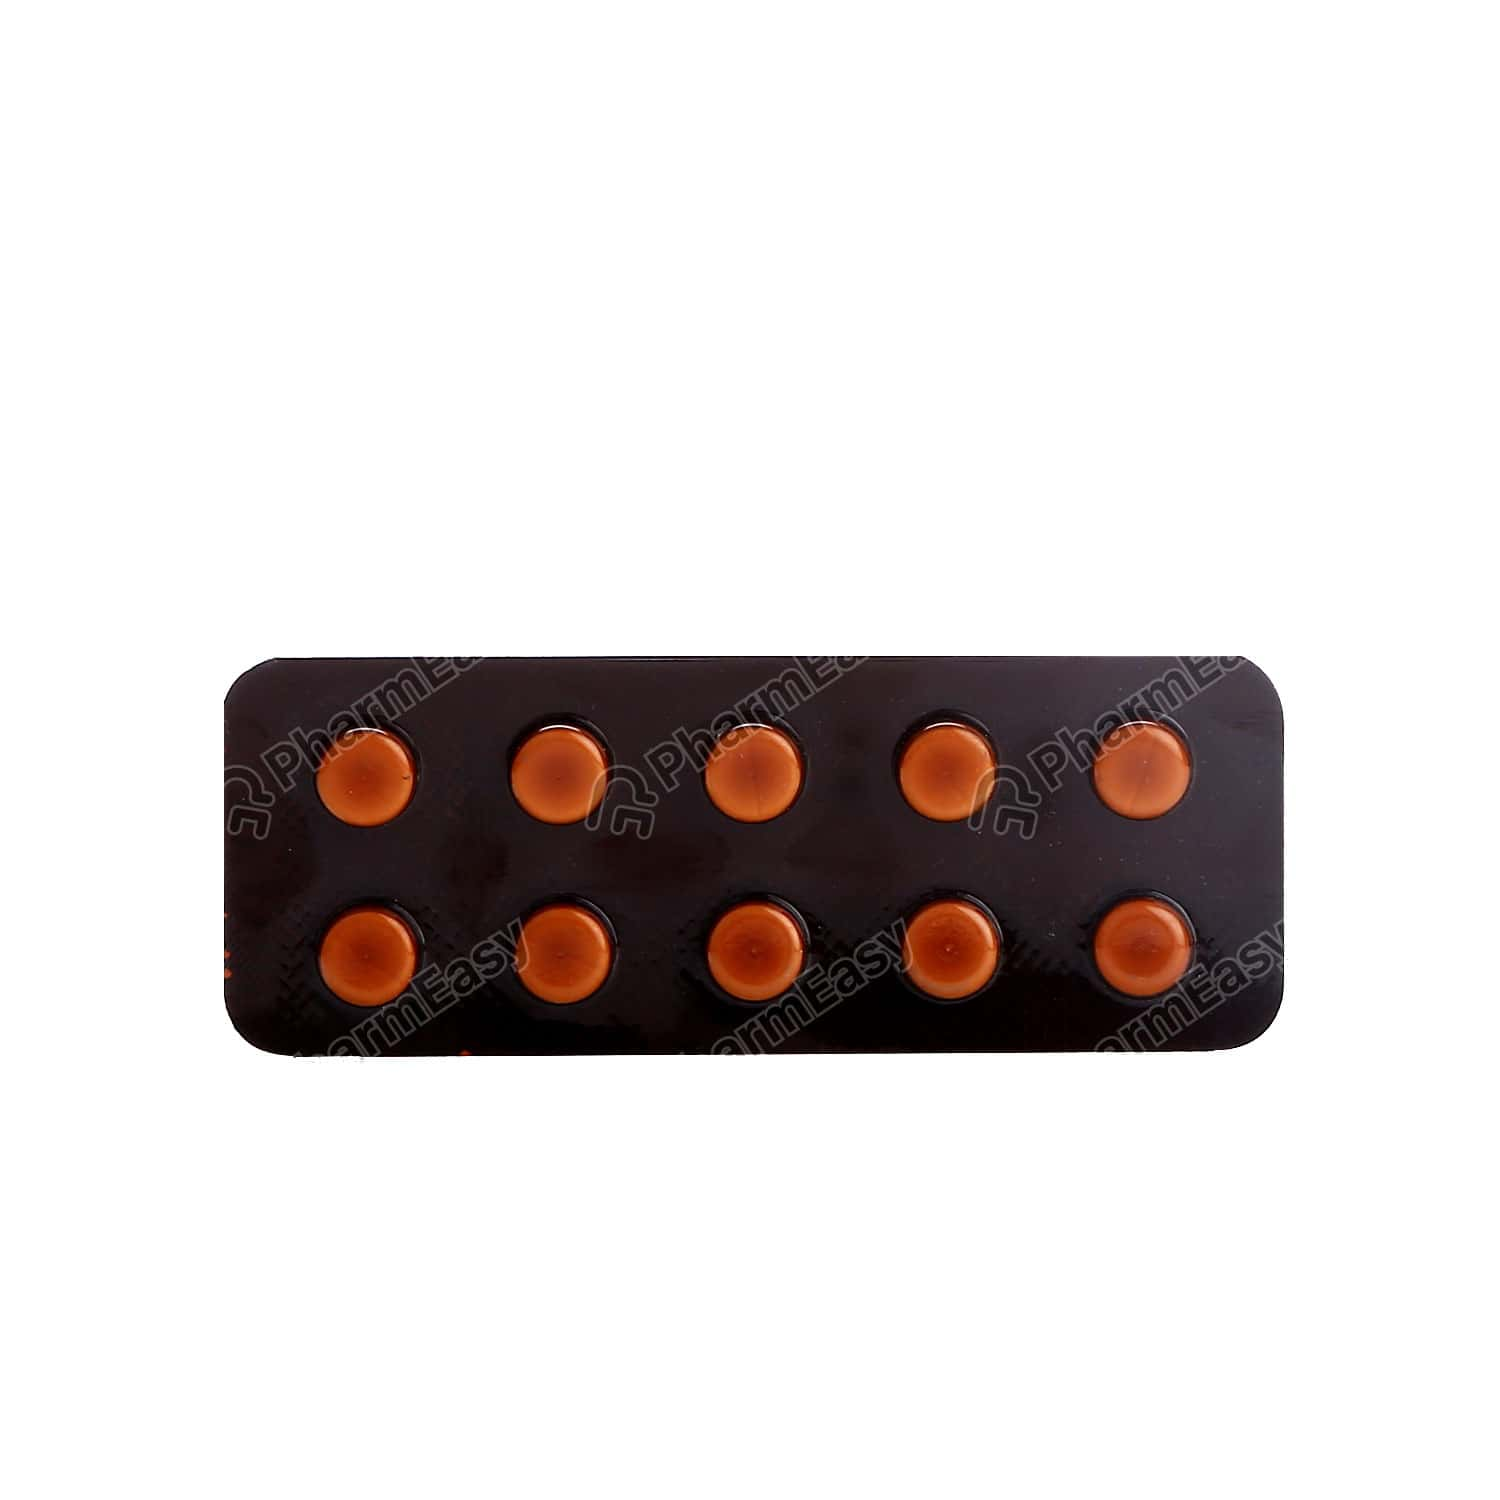 Bromhexine 8mg Strip Of 10 Tablets